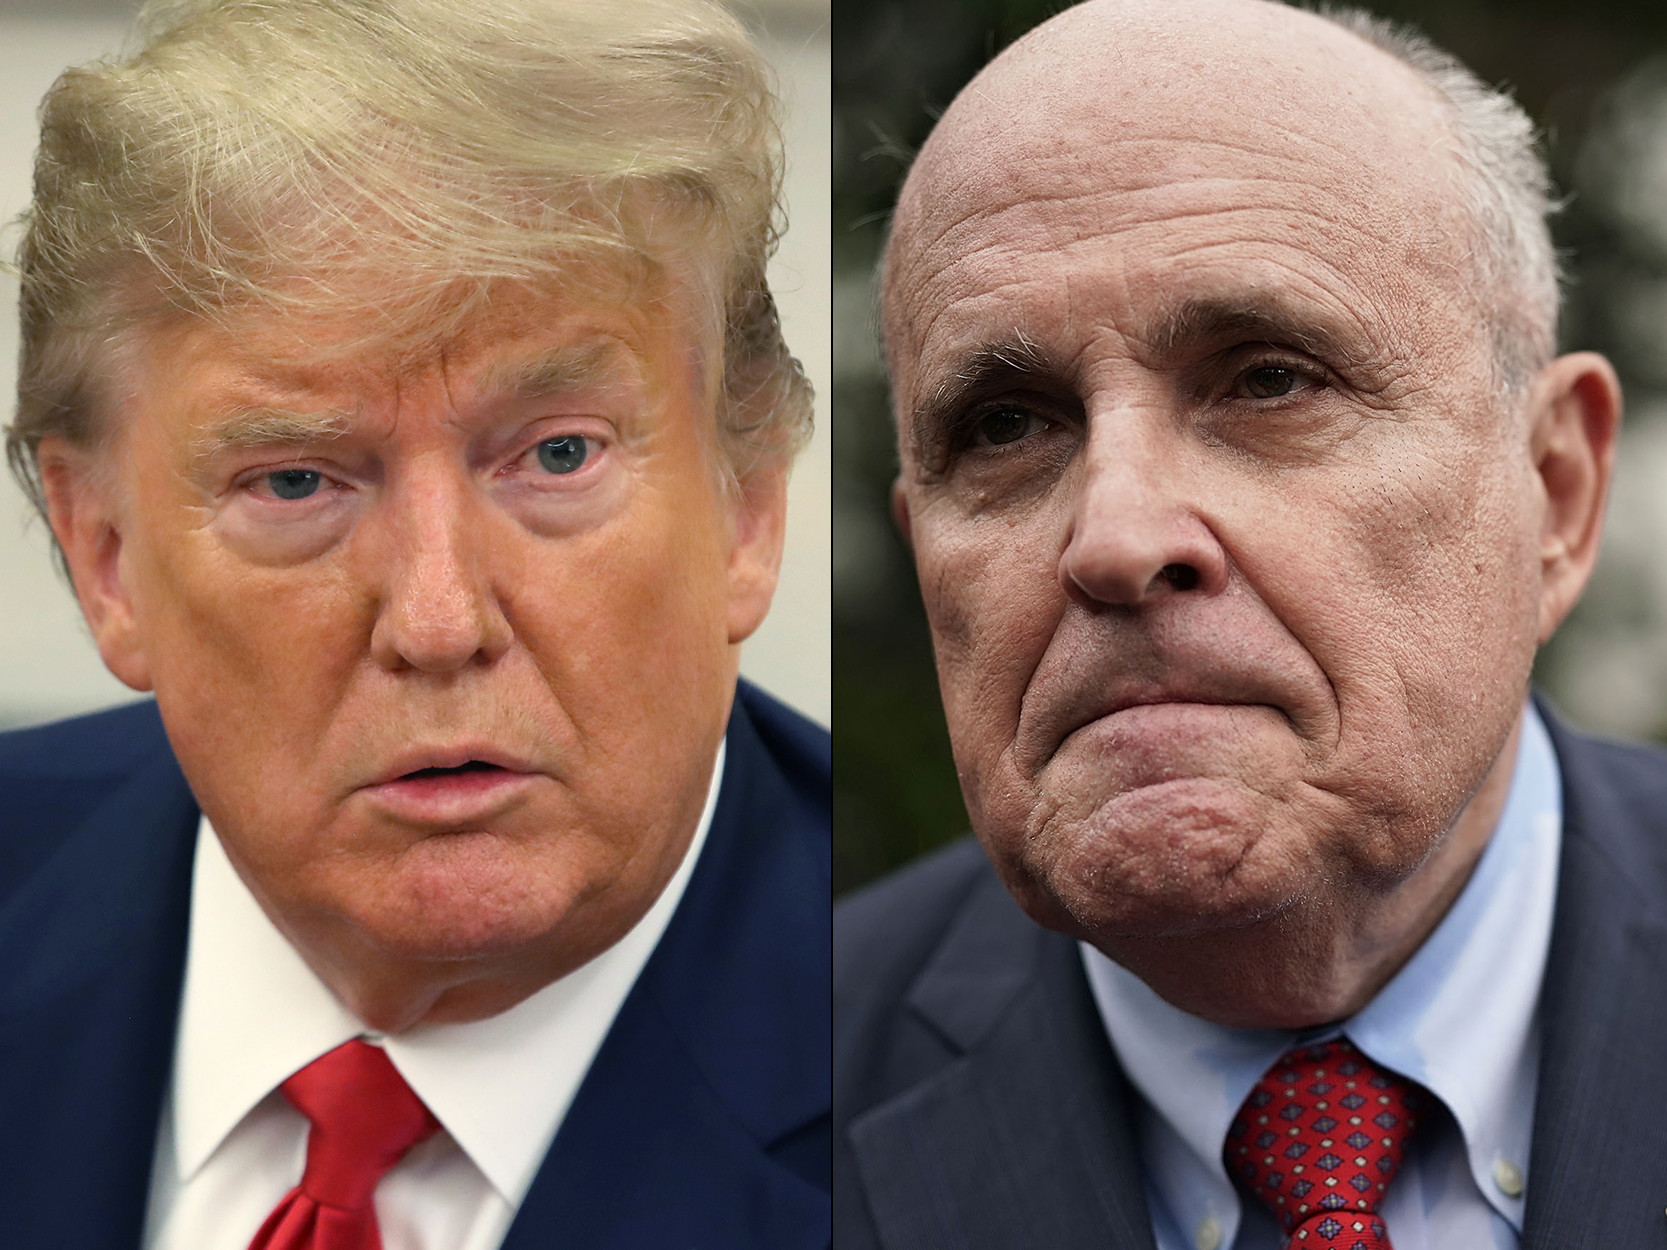 Rudy Giuliani is Trump's 'political hitman,' Dems say, calling president 'lawless' for pressing Ukraine leader for dirt on Biden